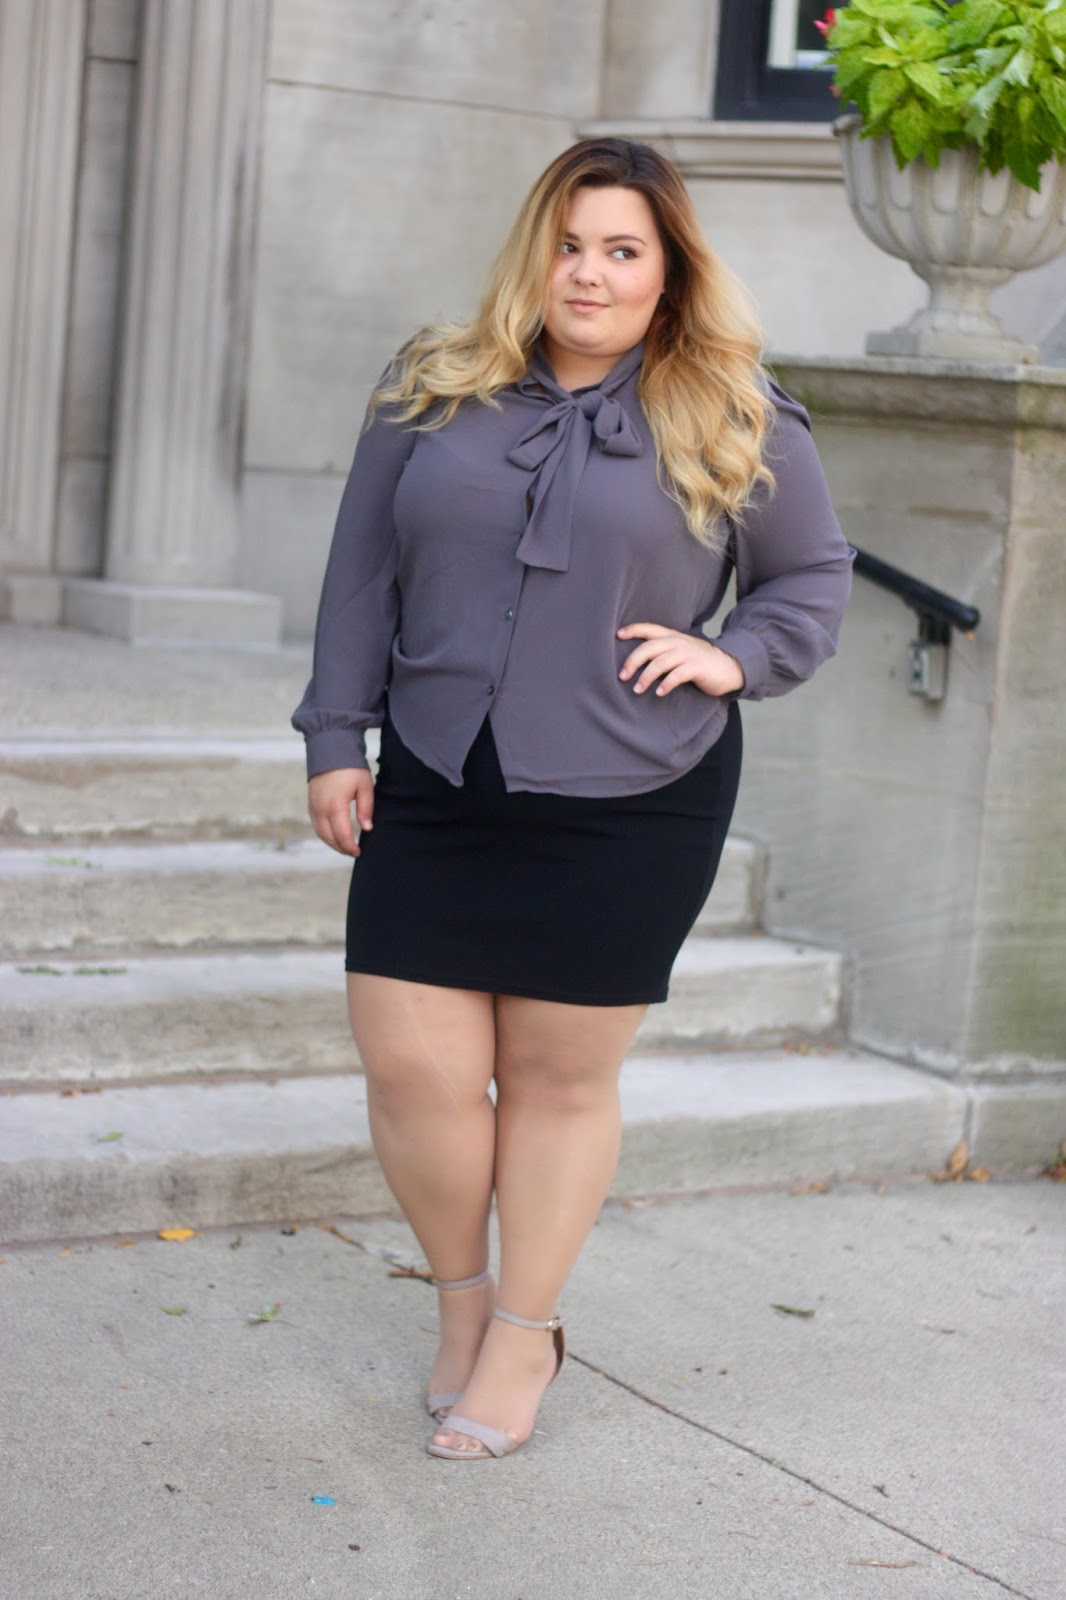 natalieinthecity.com, bow tie blouse, plus size fashion, plus size blogger, fashion blogger style, natalie craig, natalie in the city, chicago, midwest blogger, chicago blogger, plus size office attire